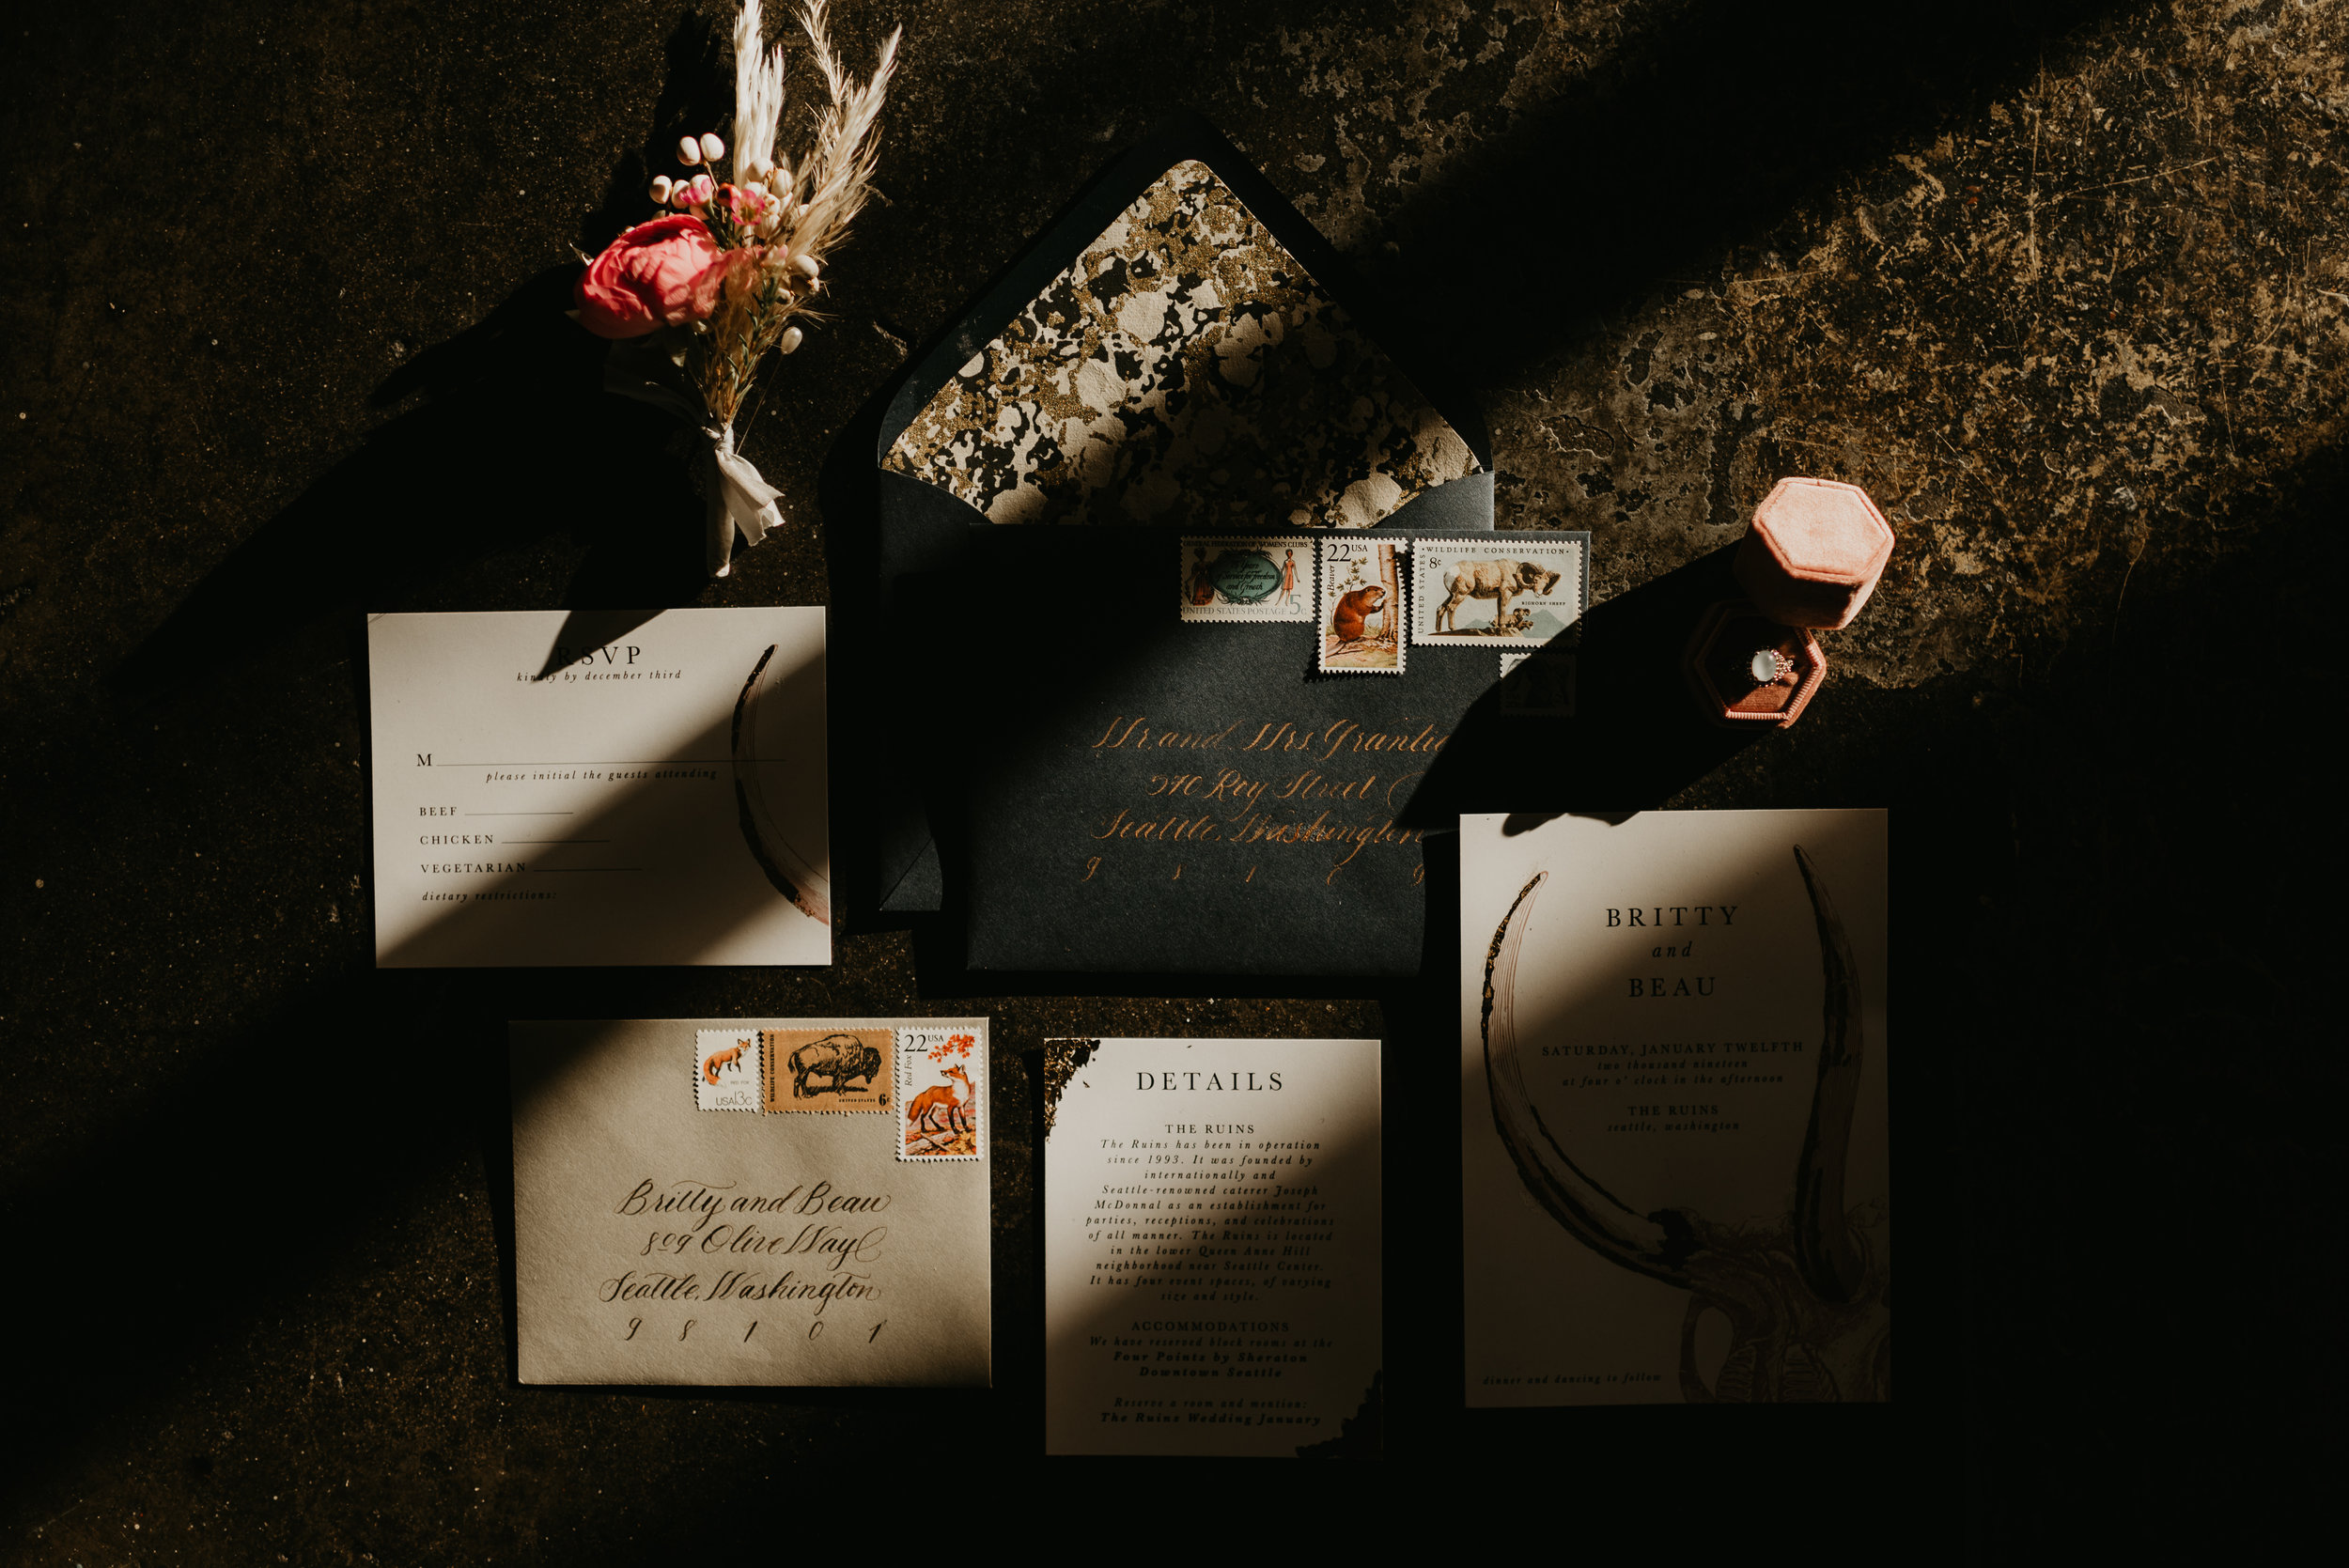 Wedding Stationery - Beau + Britty - Dutch Carnival Styled Elopement Shoot at The Ruins, Seattle, WA - Seattle Elopement Photographer